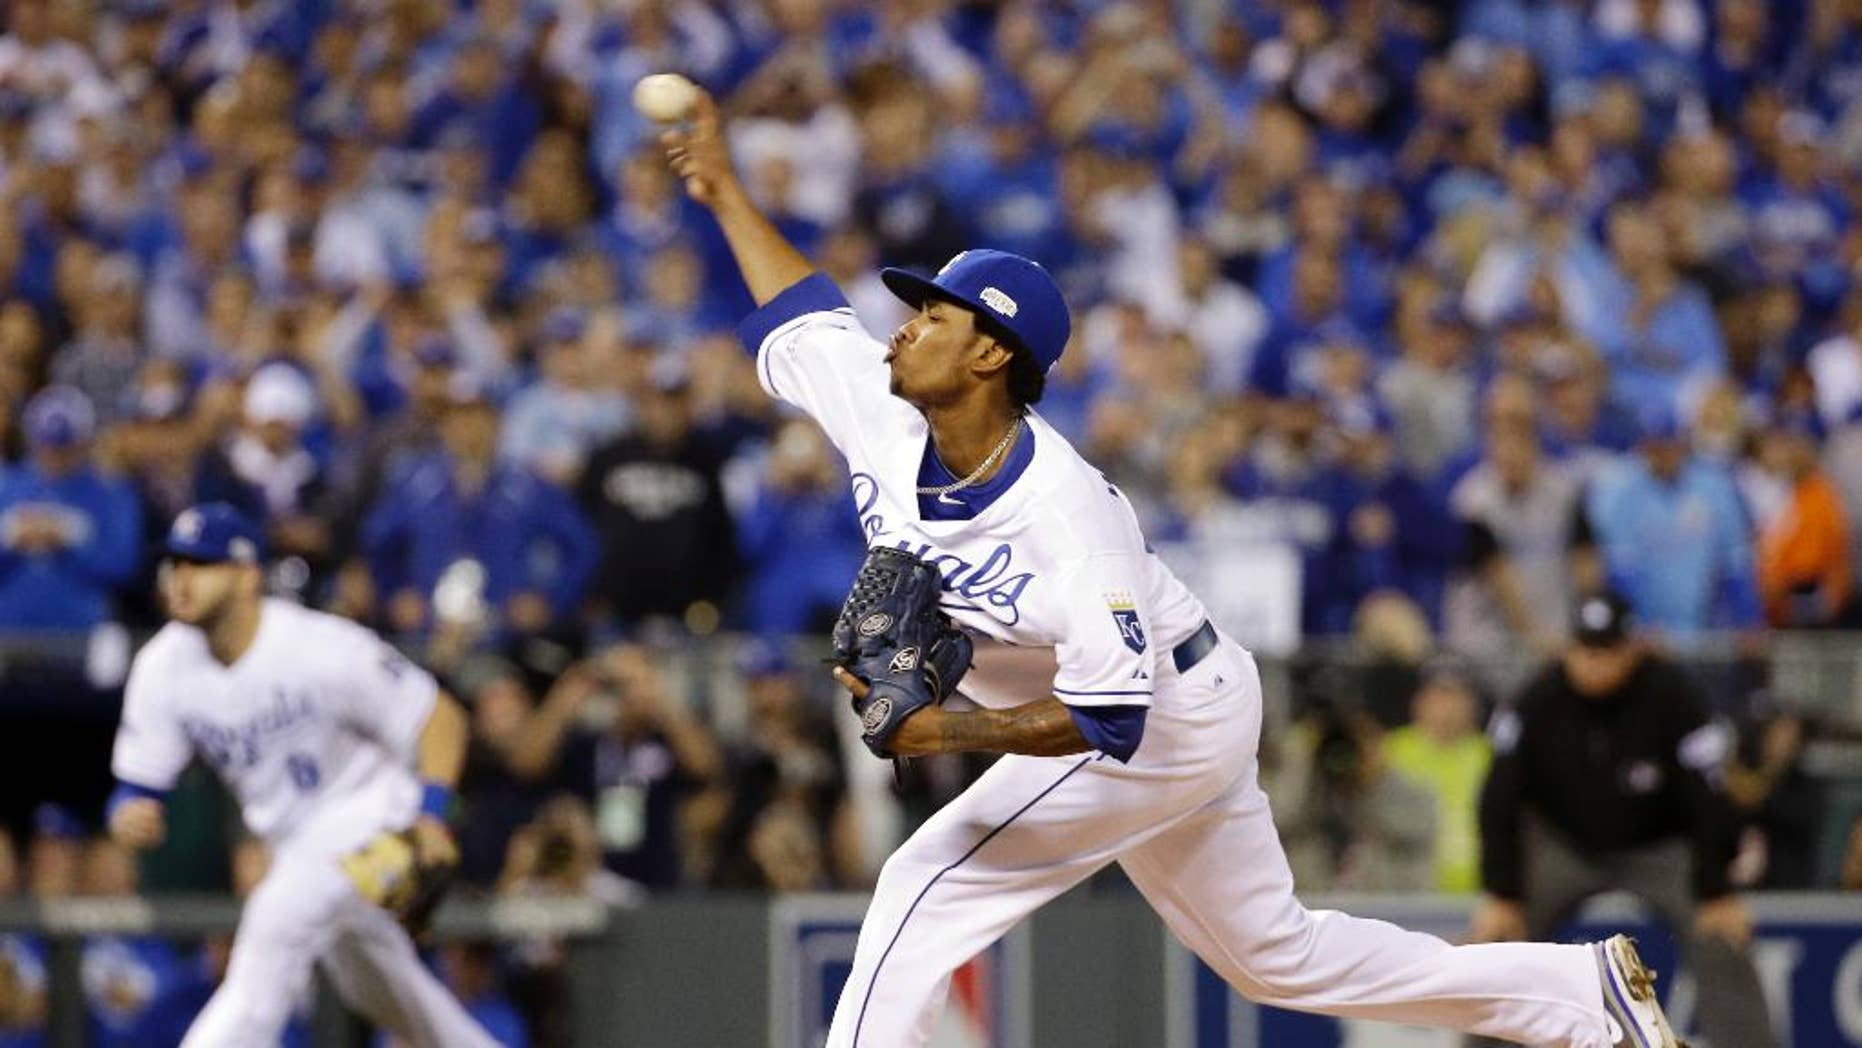 Kansas City Royals pitcher Yordano Ventura throws during the first inning of Game 2 of baseball's World Series against the San Francisco Giants Wednesday, Oct. 22, 2014, in Kansas City, Mo. (AP Photo/David J. Phillip)